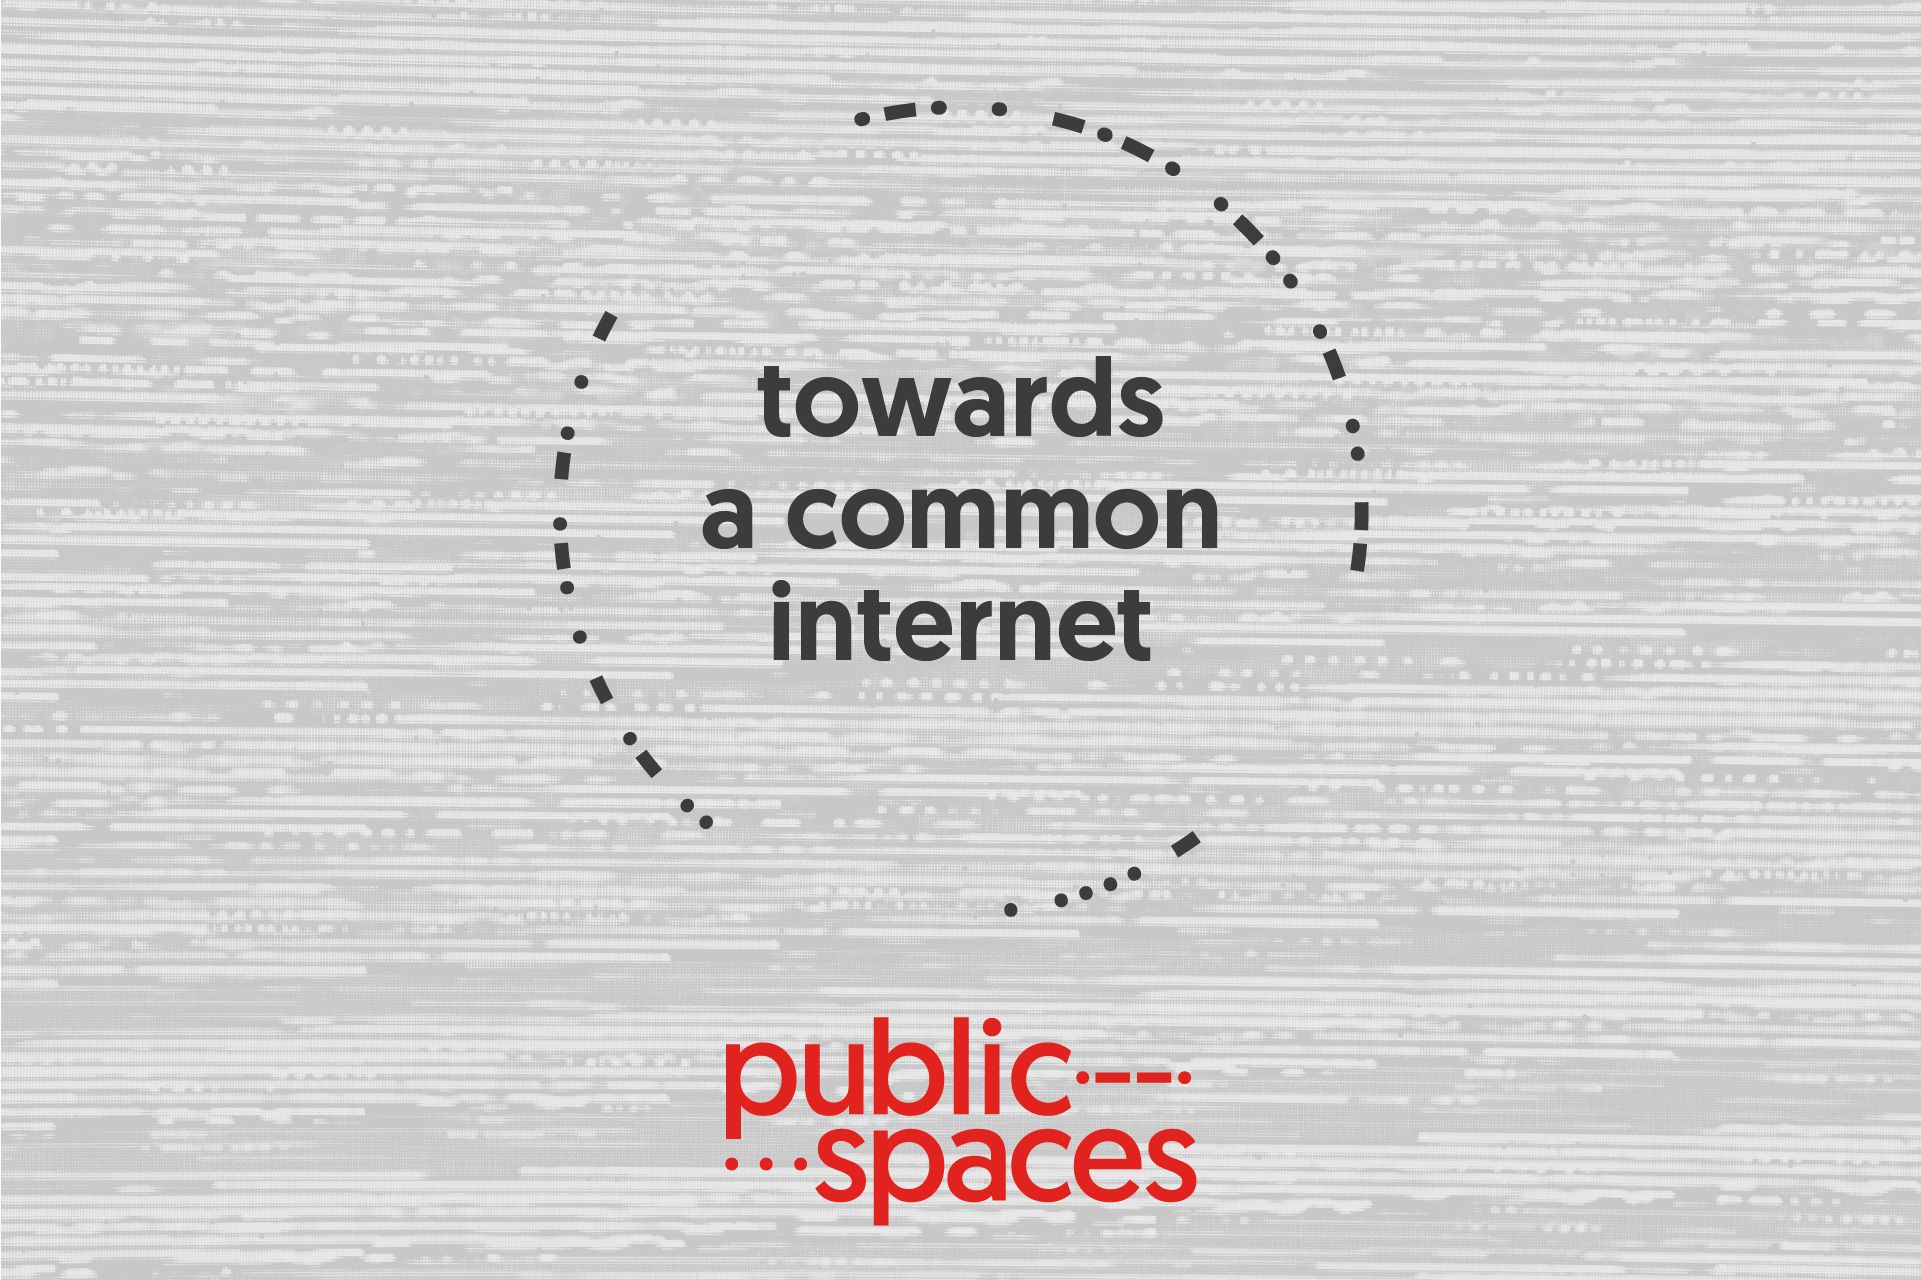 Publicspaces conference - towards a common internet